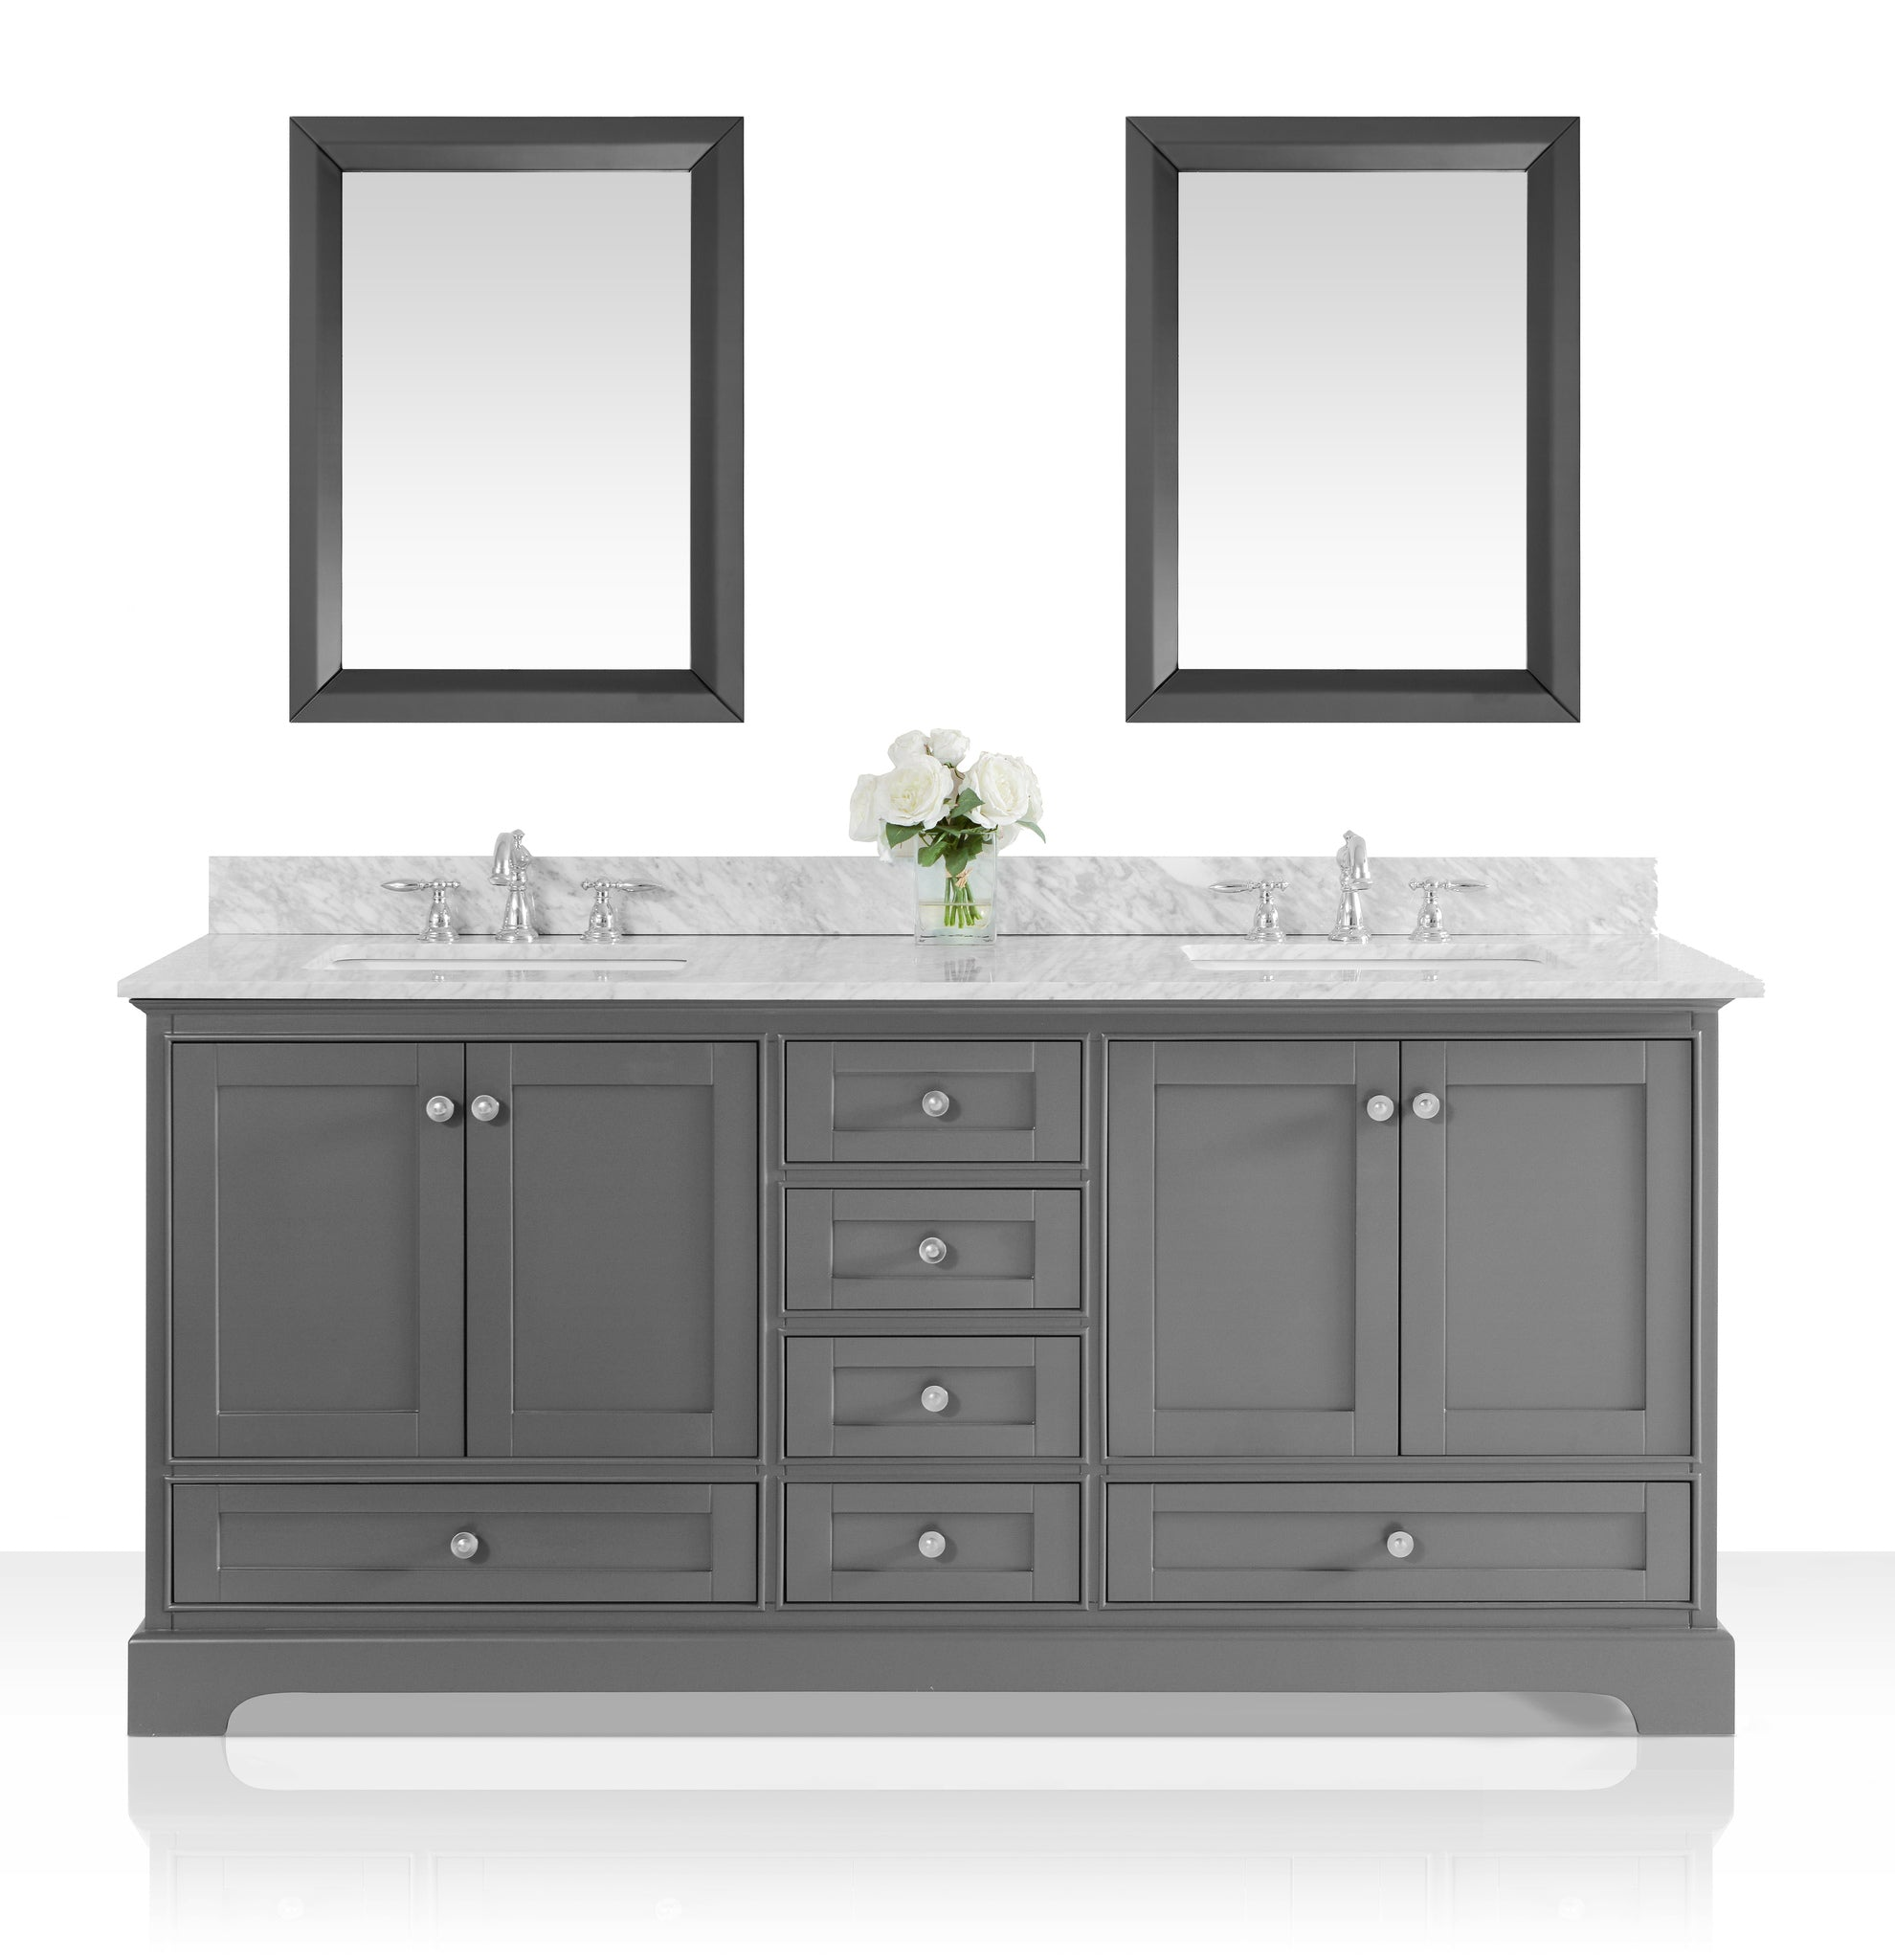 Audrey 72 in. Bath Vanity Set in Sapphire Gray with 24 in. Mirror